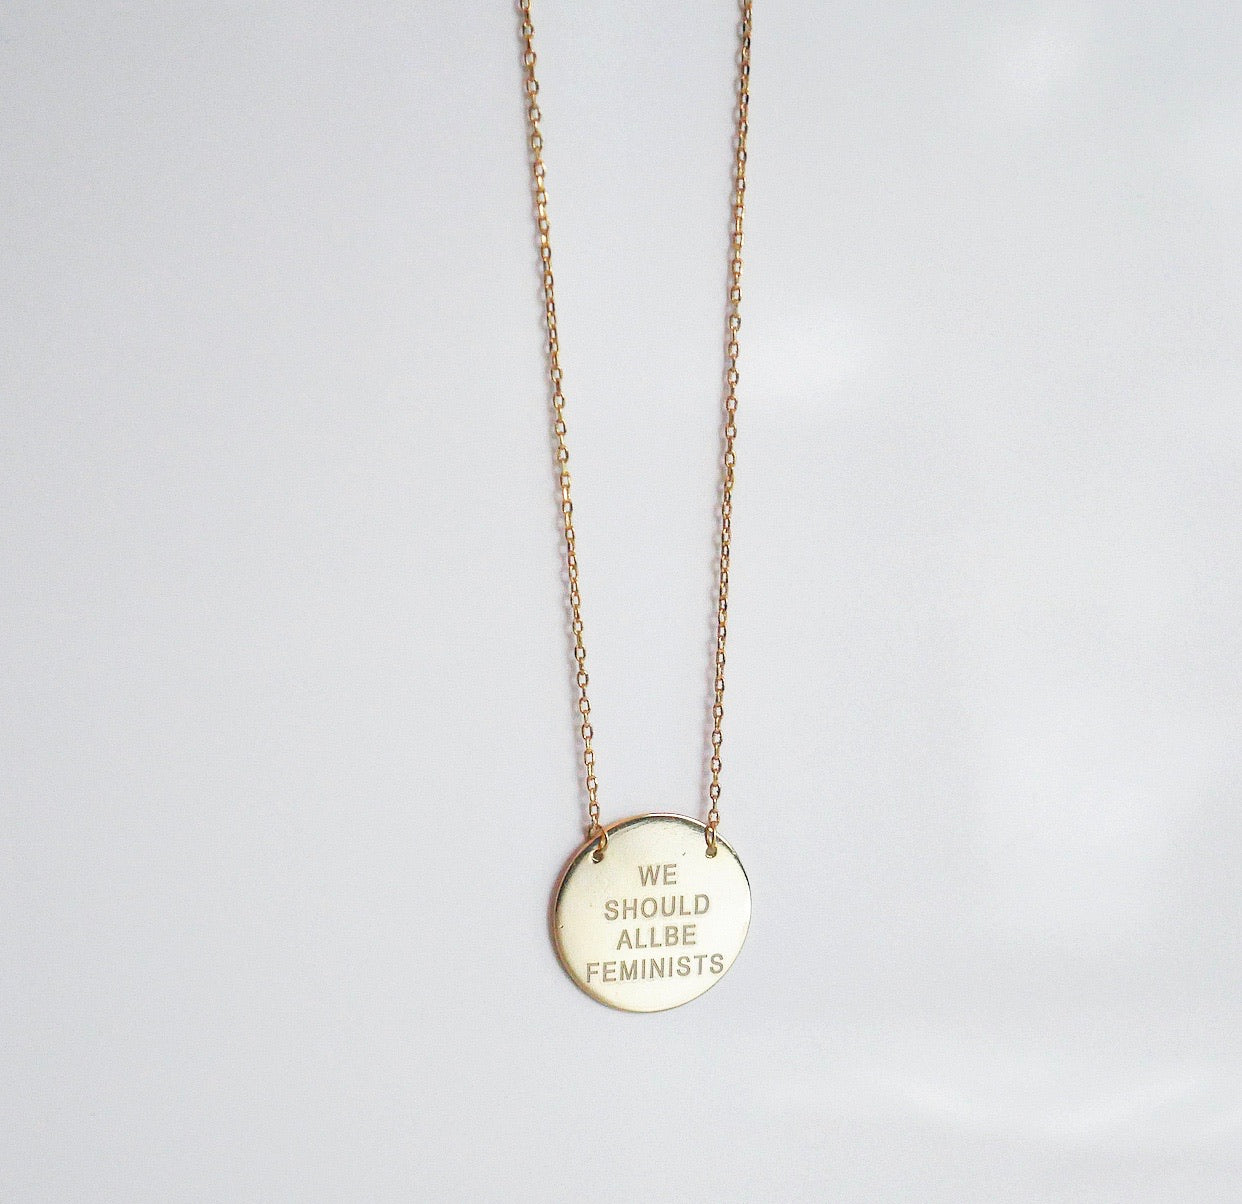 we should all be feminist necklace, we should all be feminist necklace in gold, feminist necklace, cute jewelry,  gift for her, jewelry for women, girlwith3jobs, kesleybotique.com, Gold necklace for women , feminist necklace, pride necklace , jewelry store in Miami, jewelry store in NYC, we should all be feminist quote necklace, we should all be feminist quote necklace gold, we should all be feminist quote